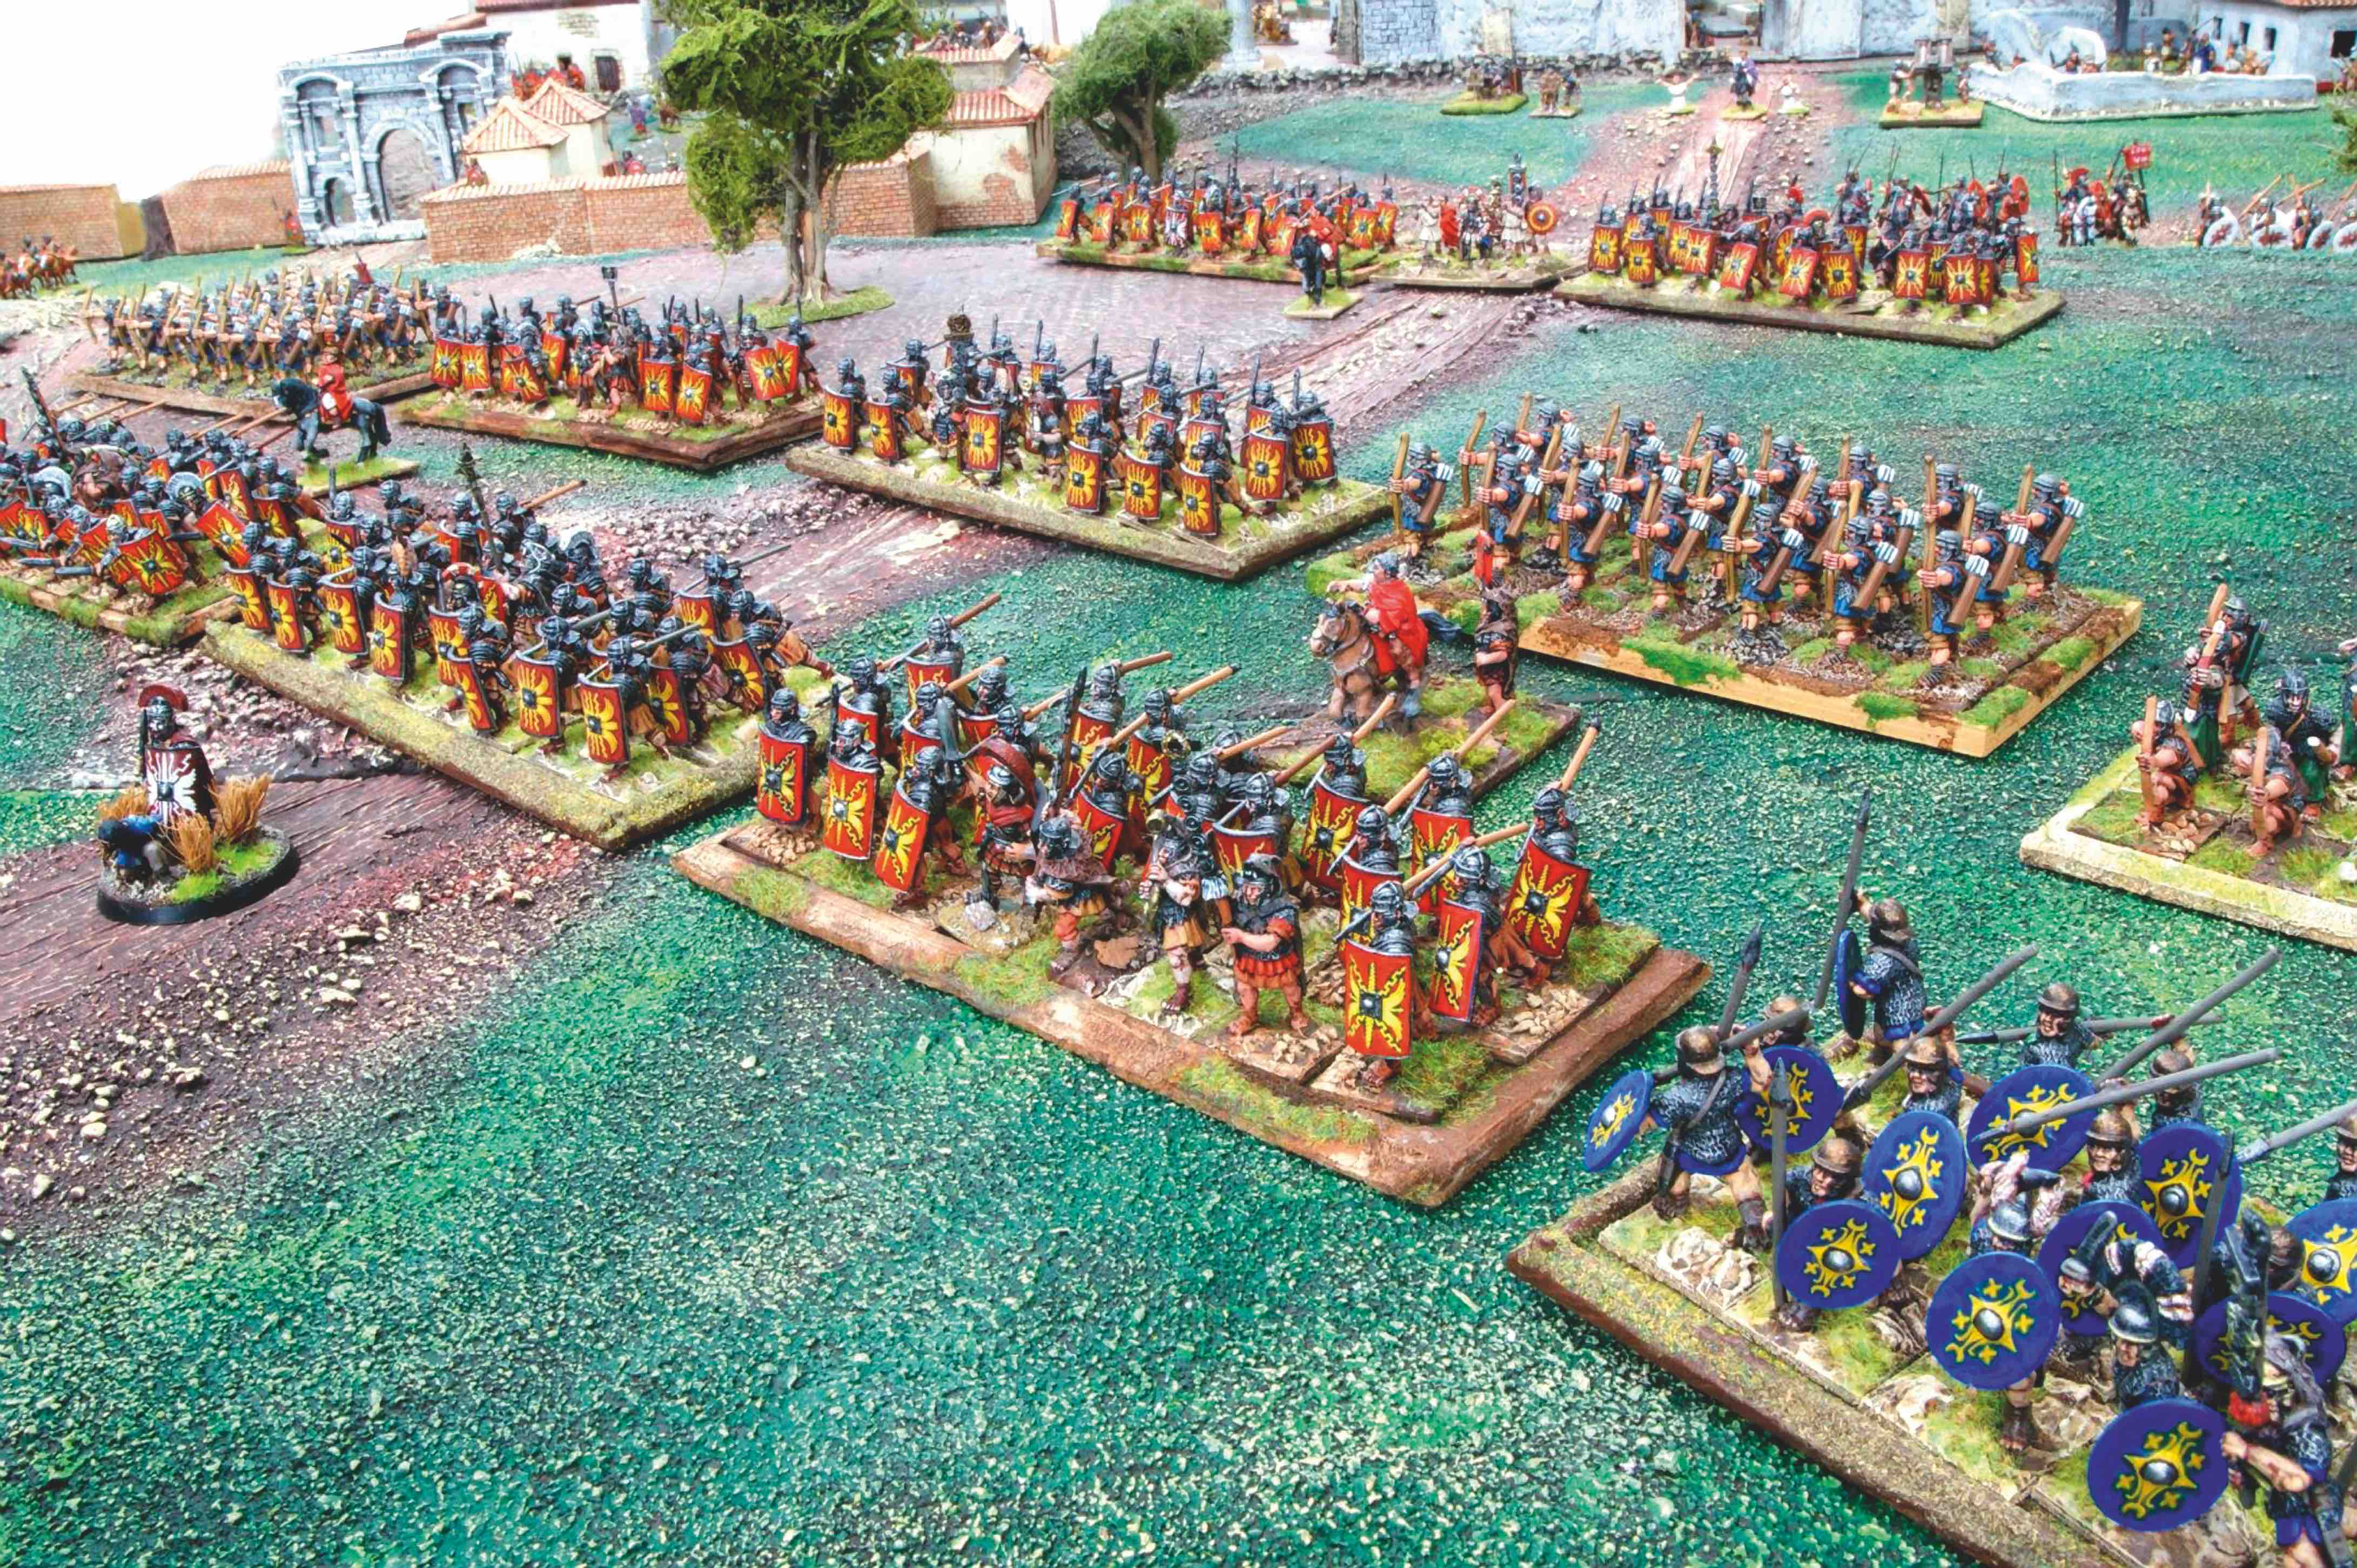 Legionaries and auxiliaries move out of the city to engage the enemy.